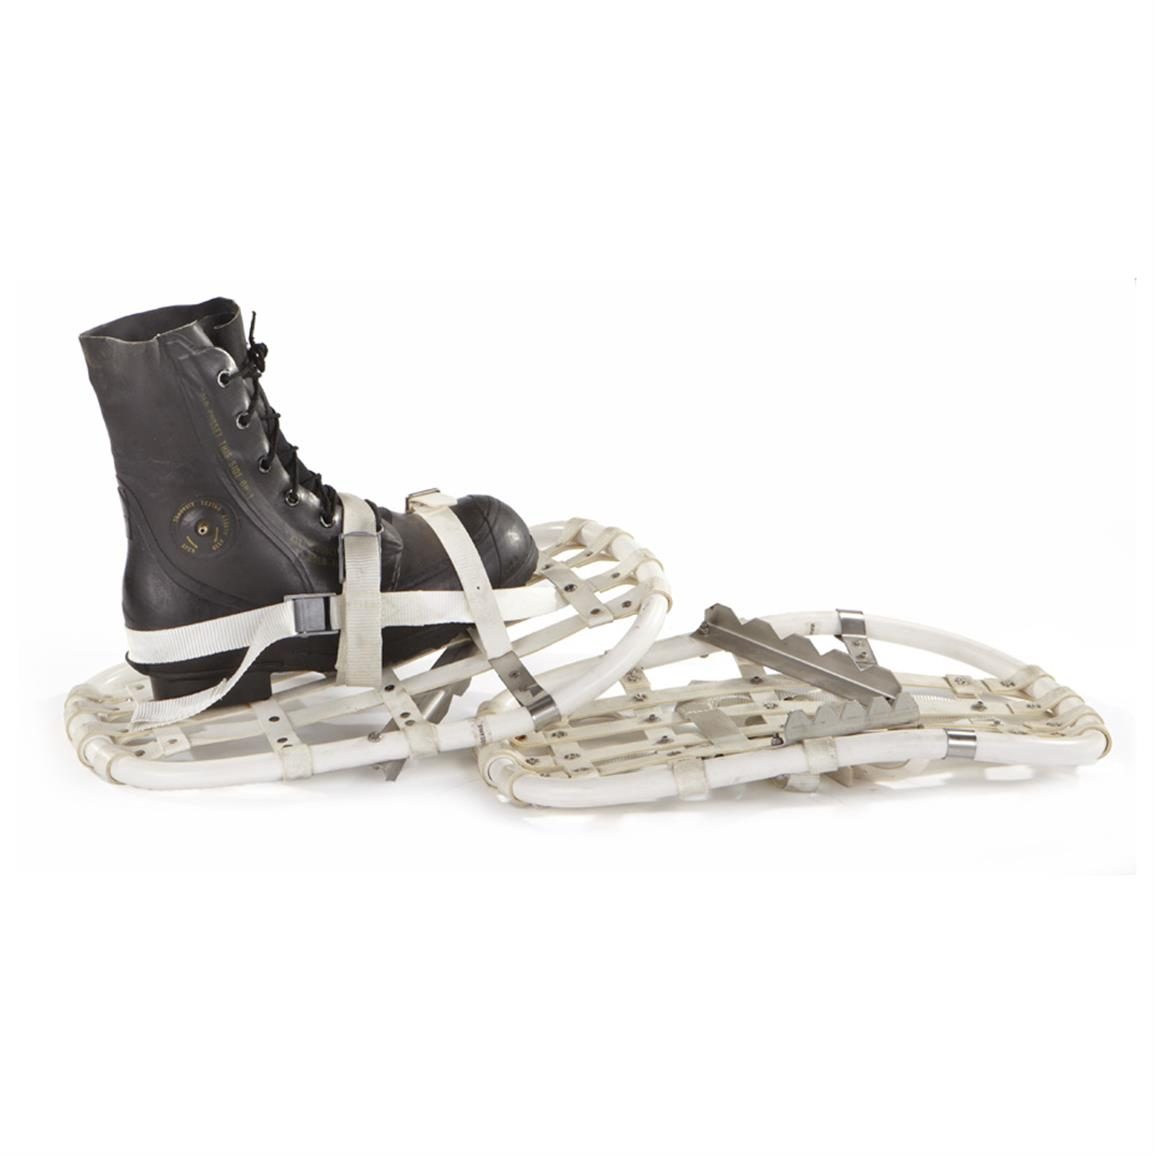 British Military Snowshoes